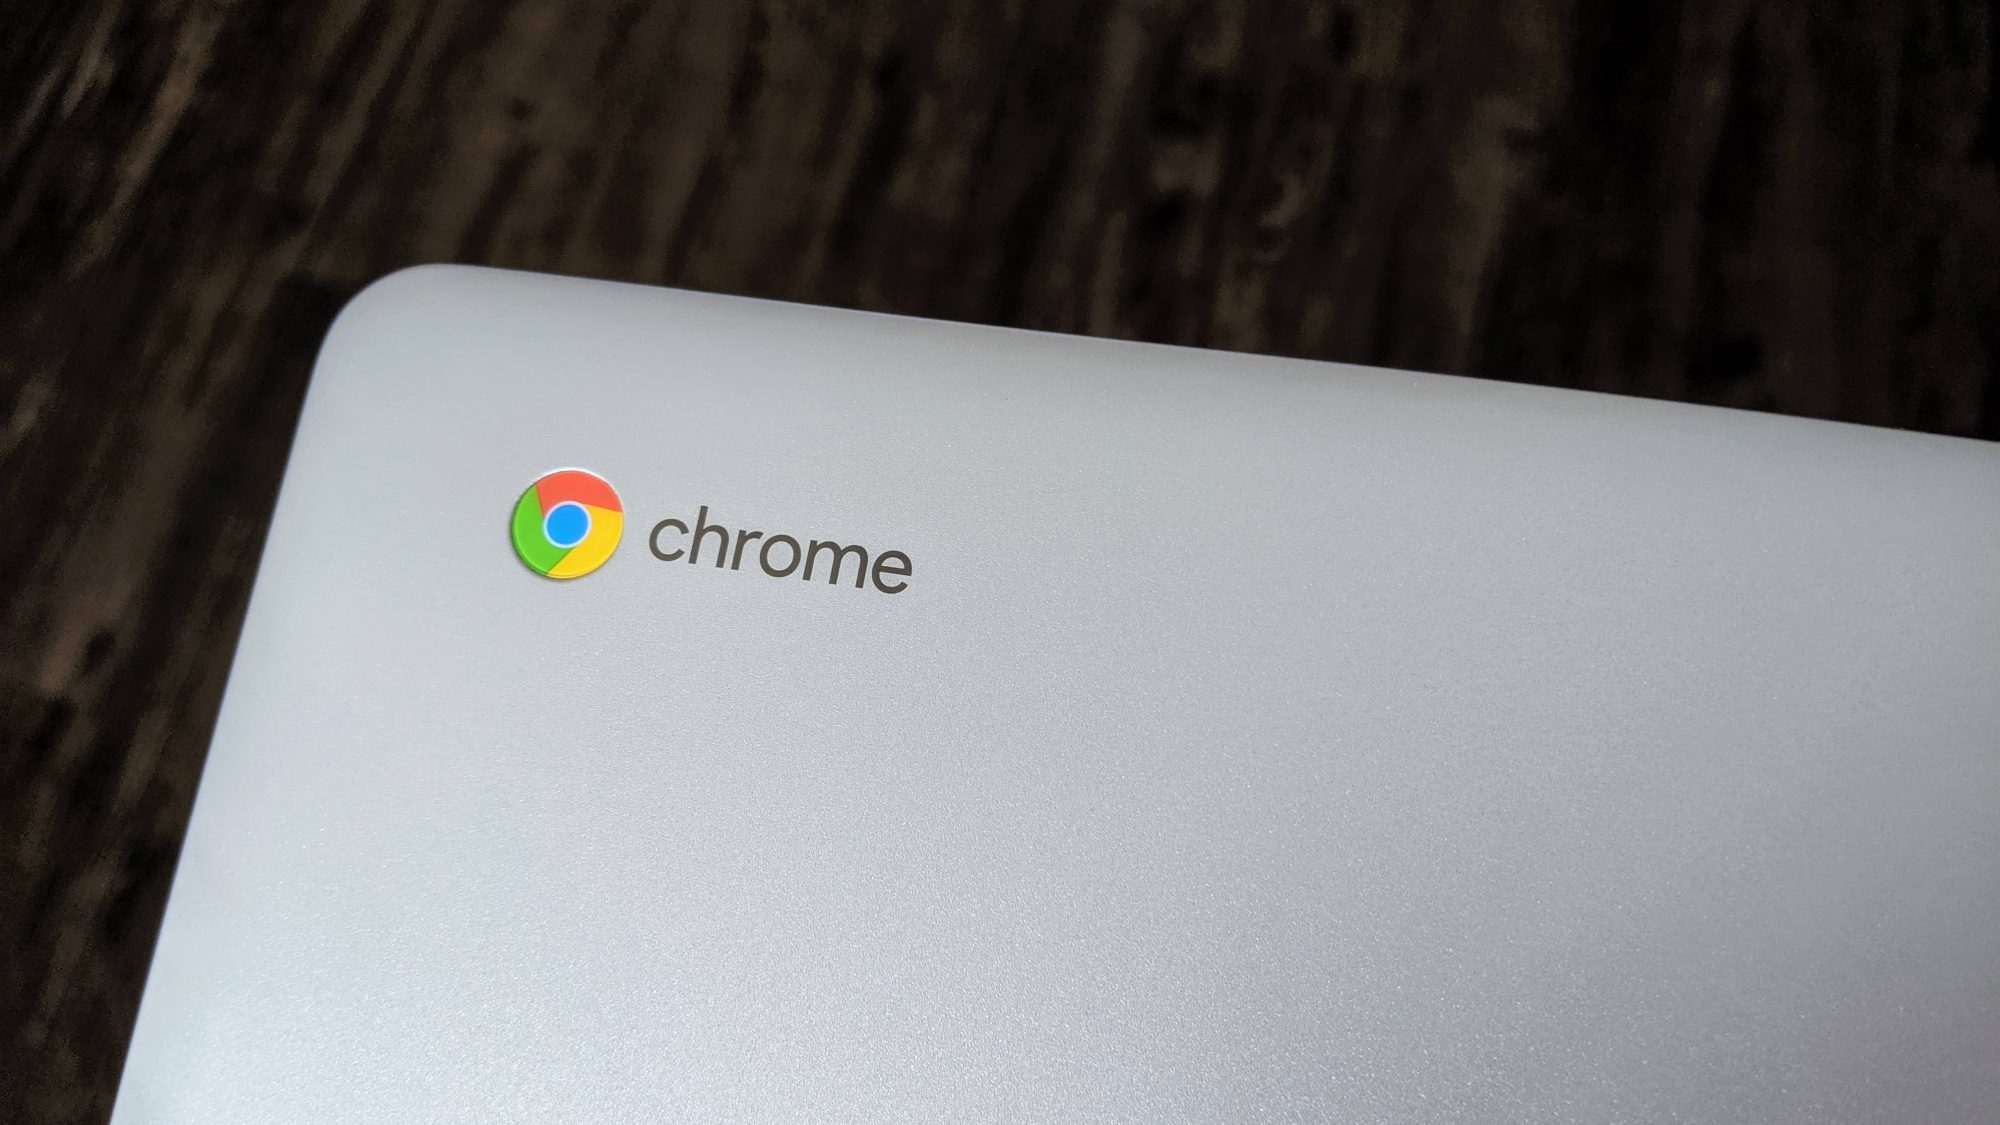 9c1f978c4f9 New Chromebook 'Kled' Shows Up To Join The Expanding 'Hatch' Family